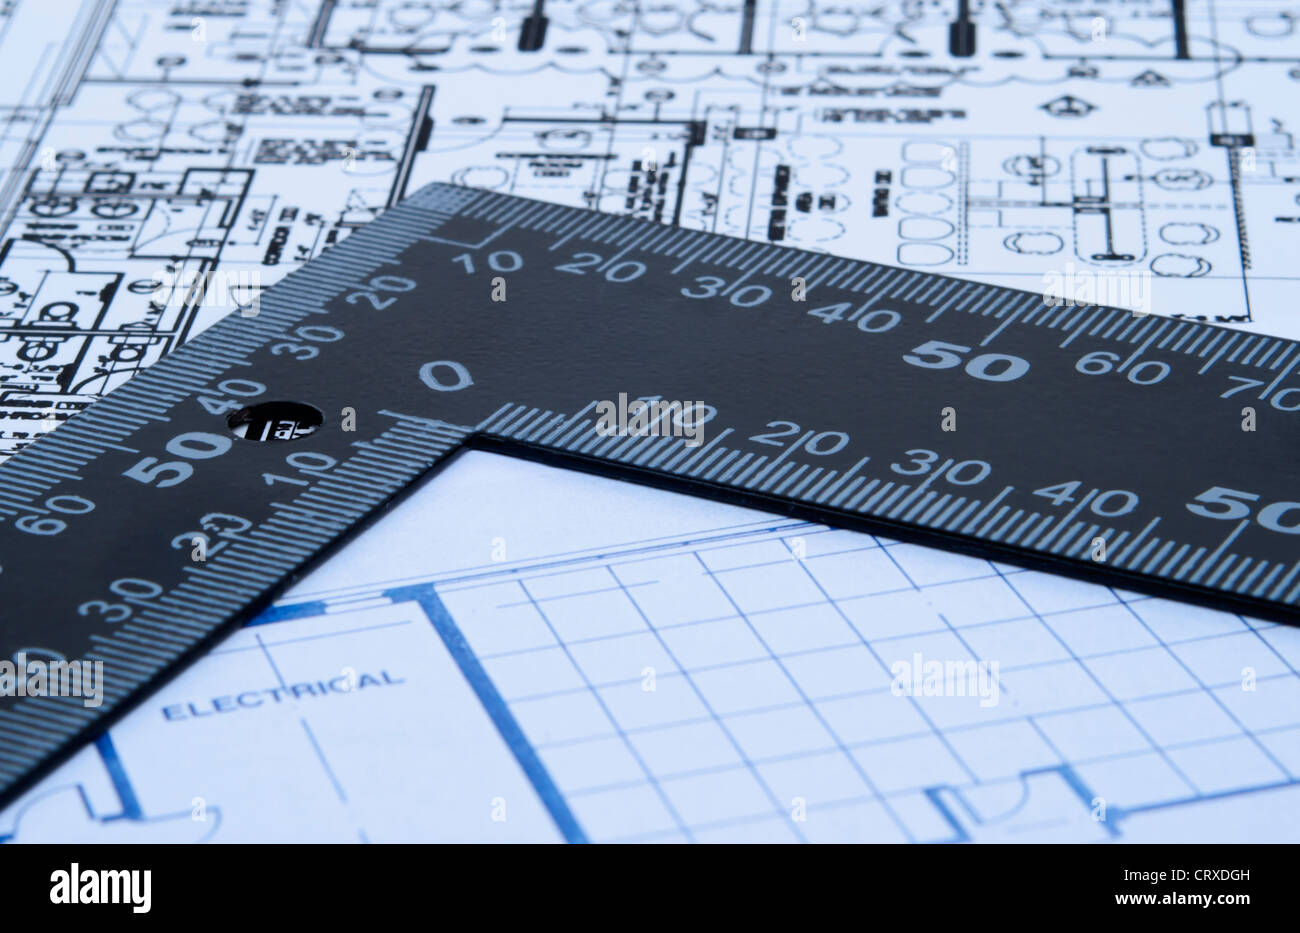 Building blueprint school stock photos building blueprint school set of architectural design blue prints with black angle ruler with copy space stock malvernweather Images